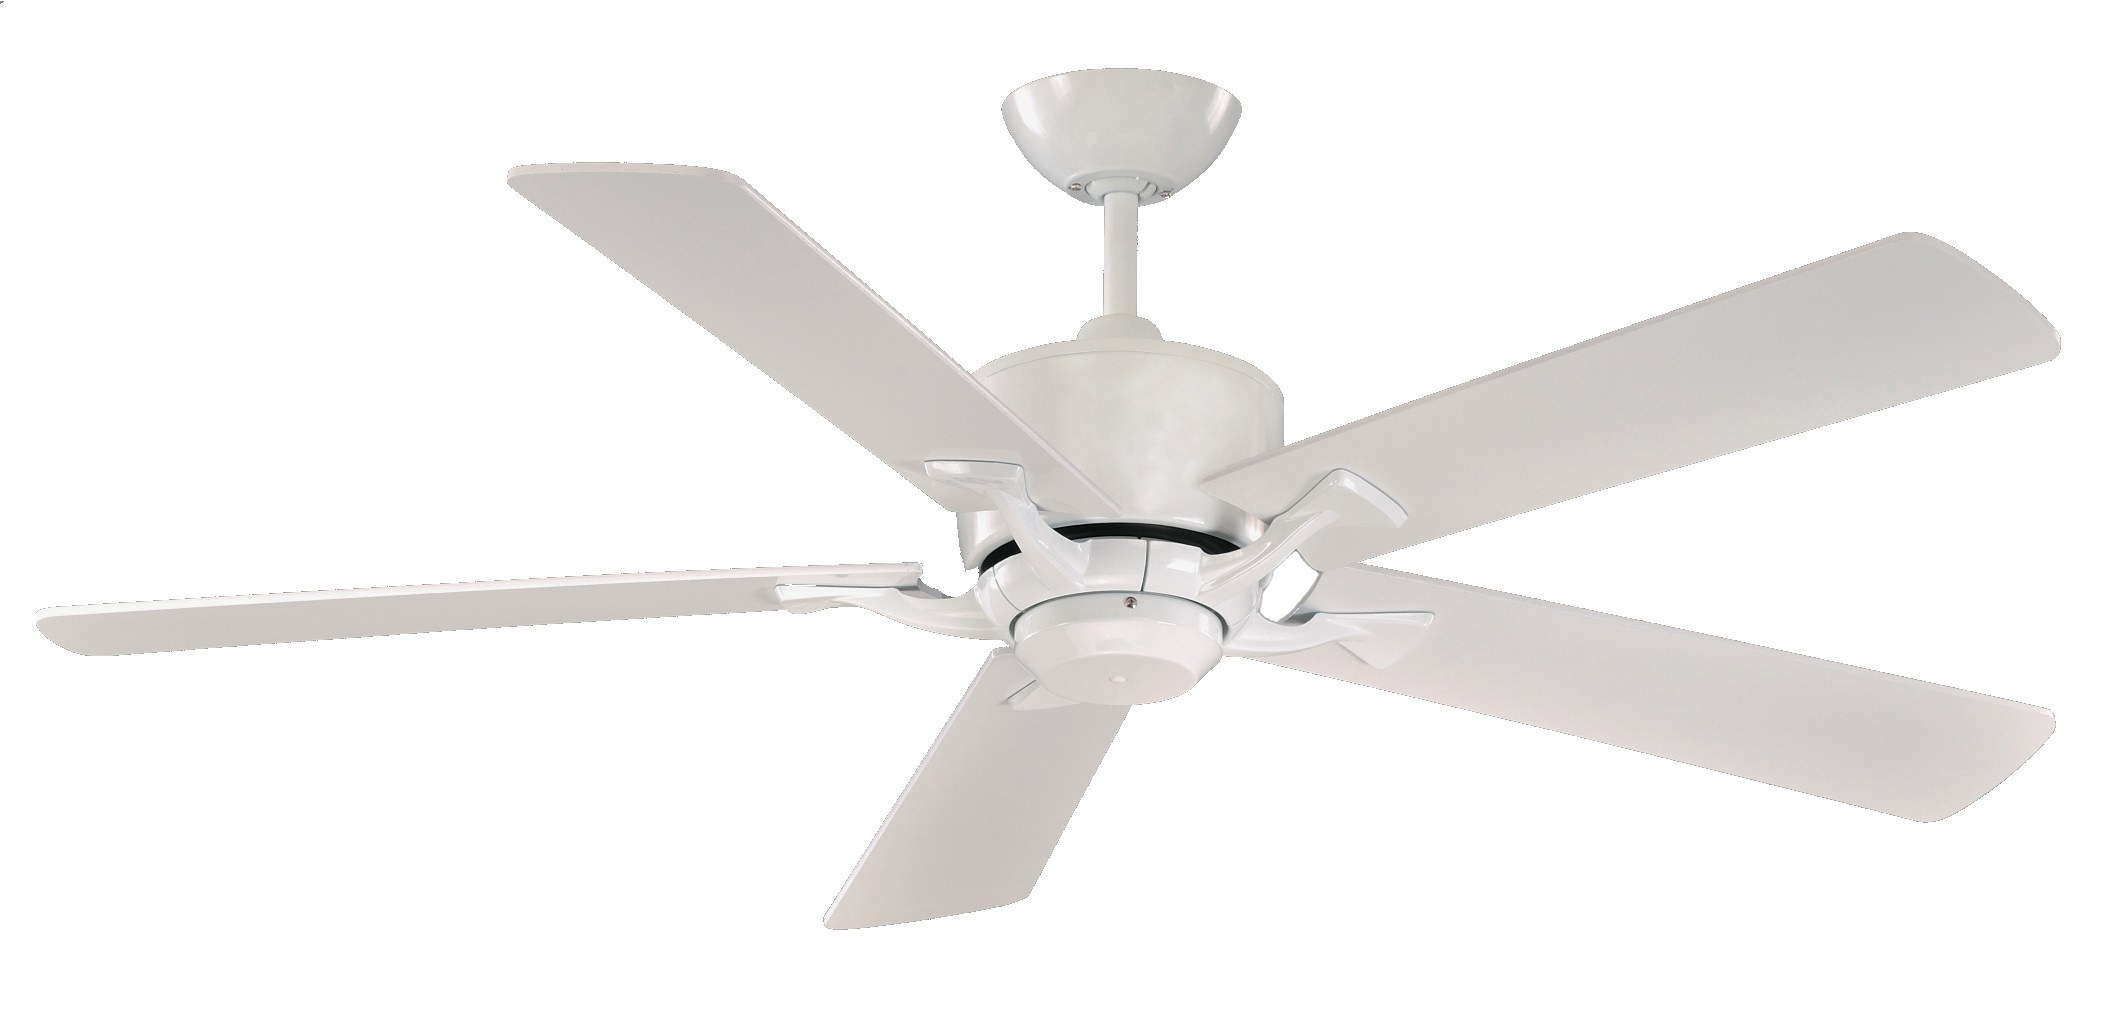 Control Ceiling Fan : Fantasia delta elite gloss white ceiling fan remote